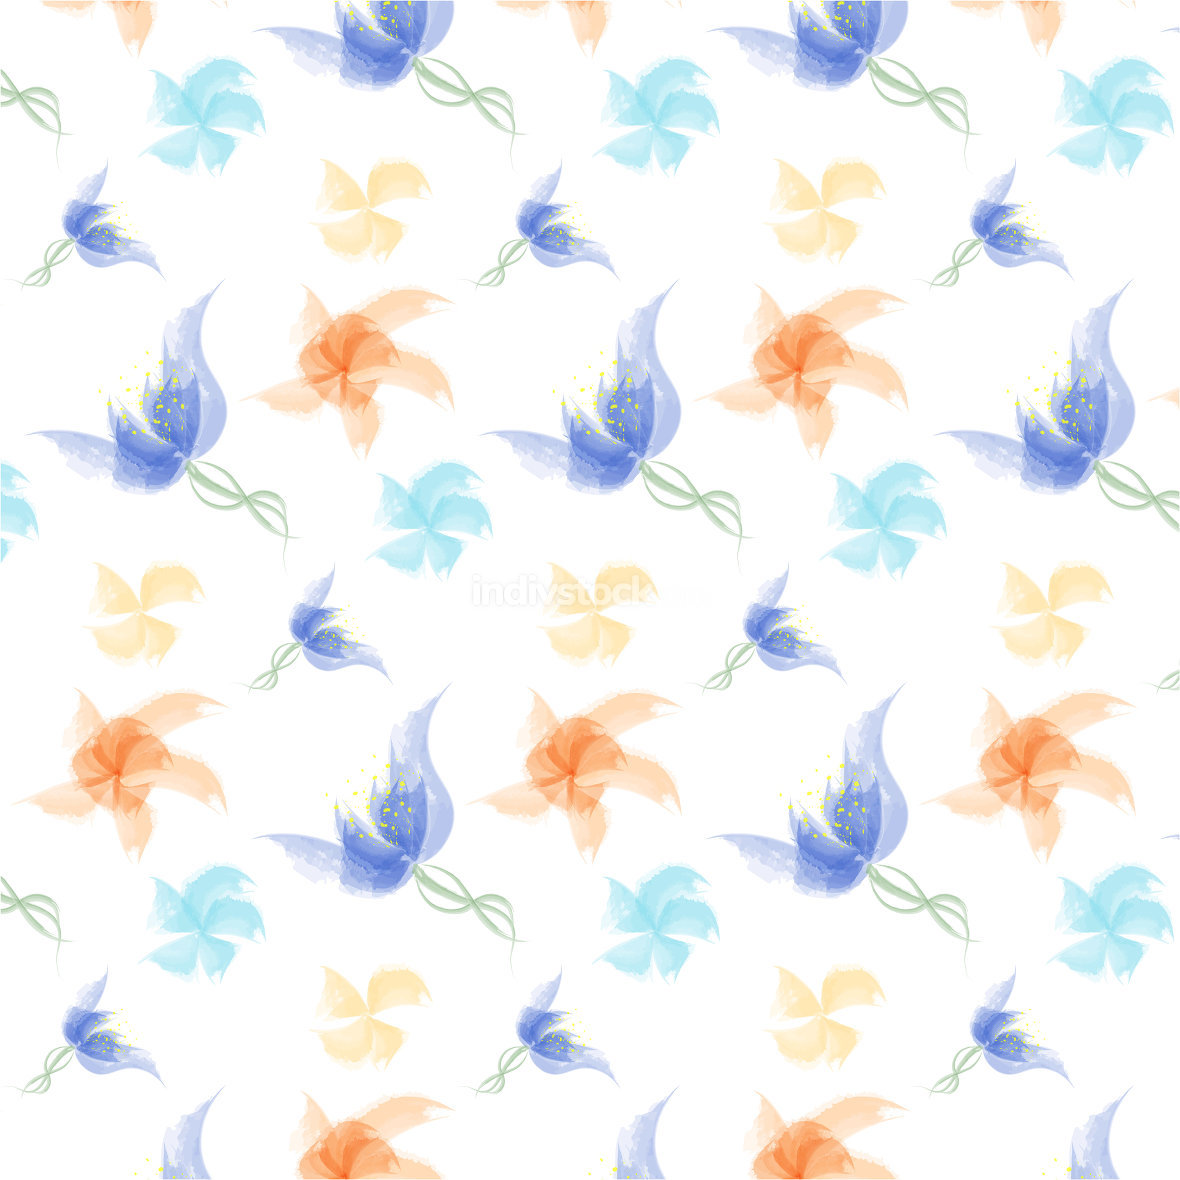 Colorful Watercolor flowers pattern - Illustration.